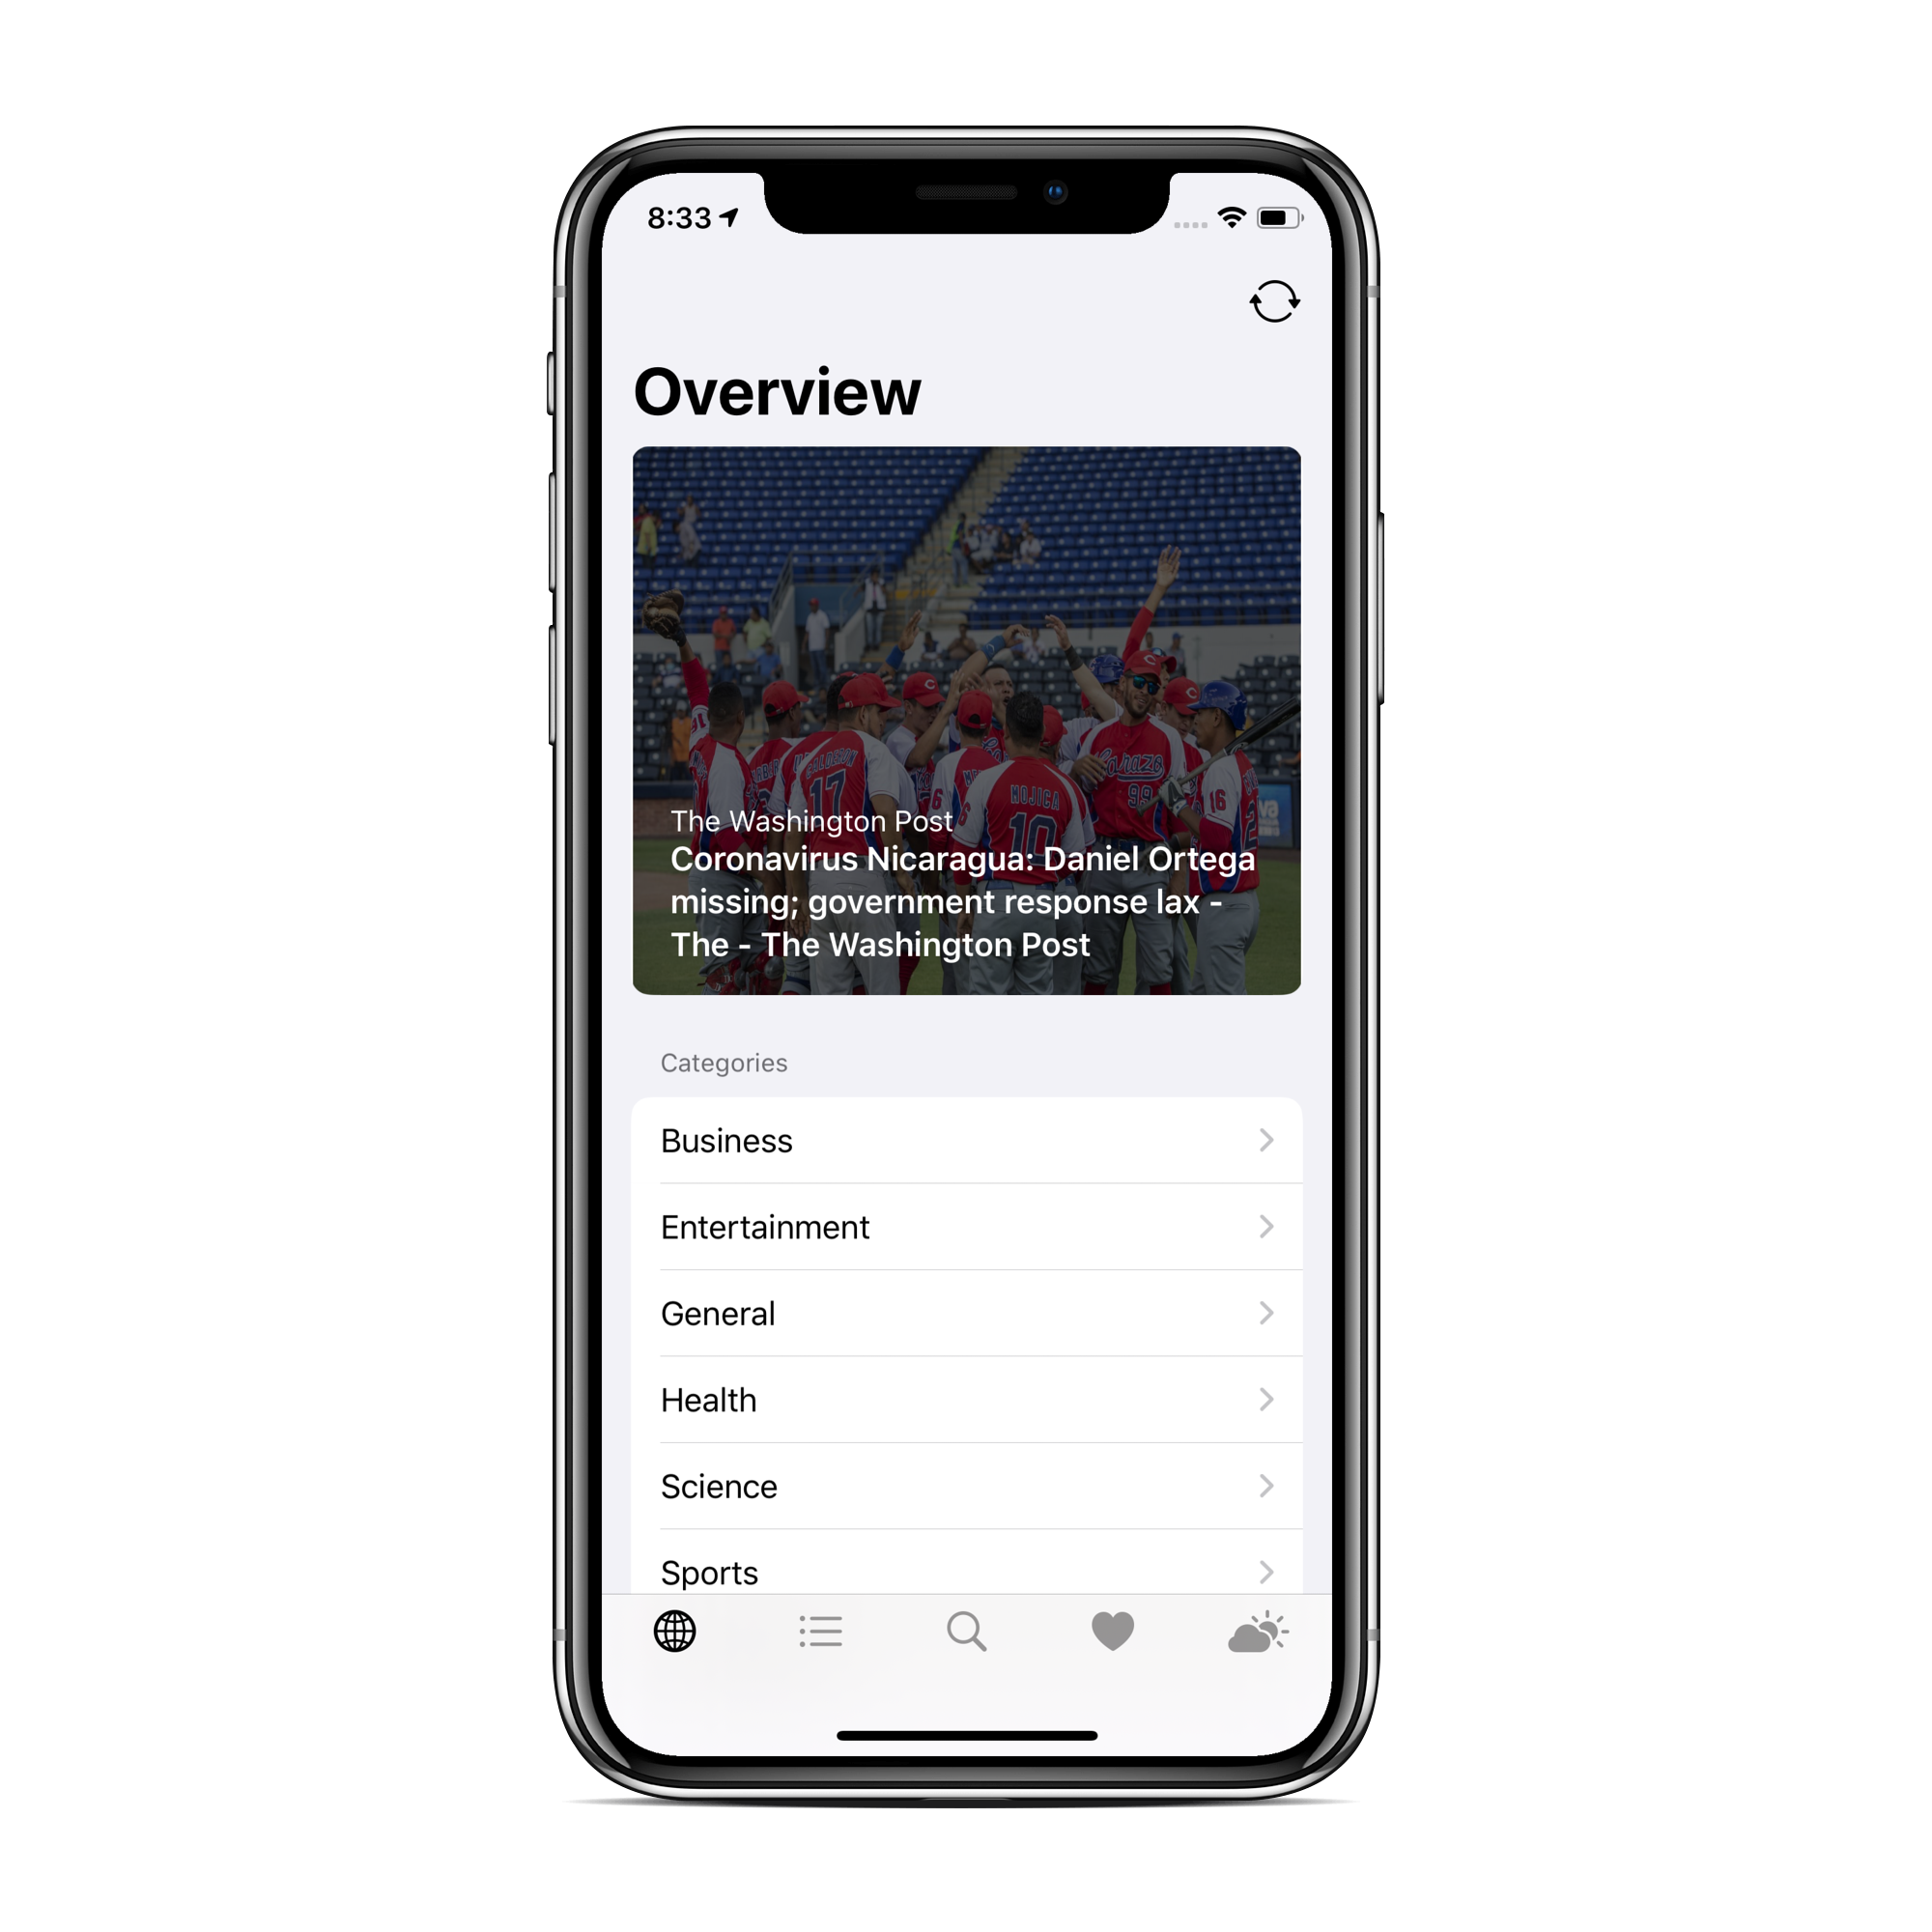 Promo image consisting of screenshot of iPhone showing the overview of the first tab